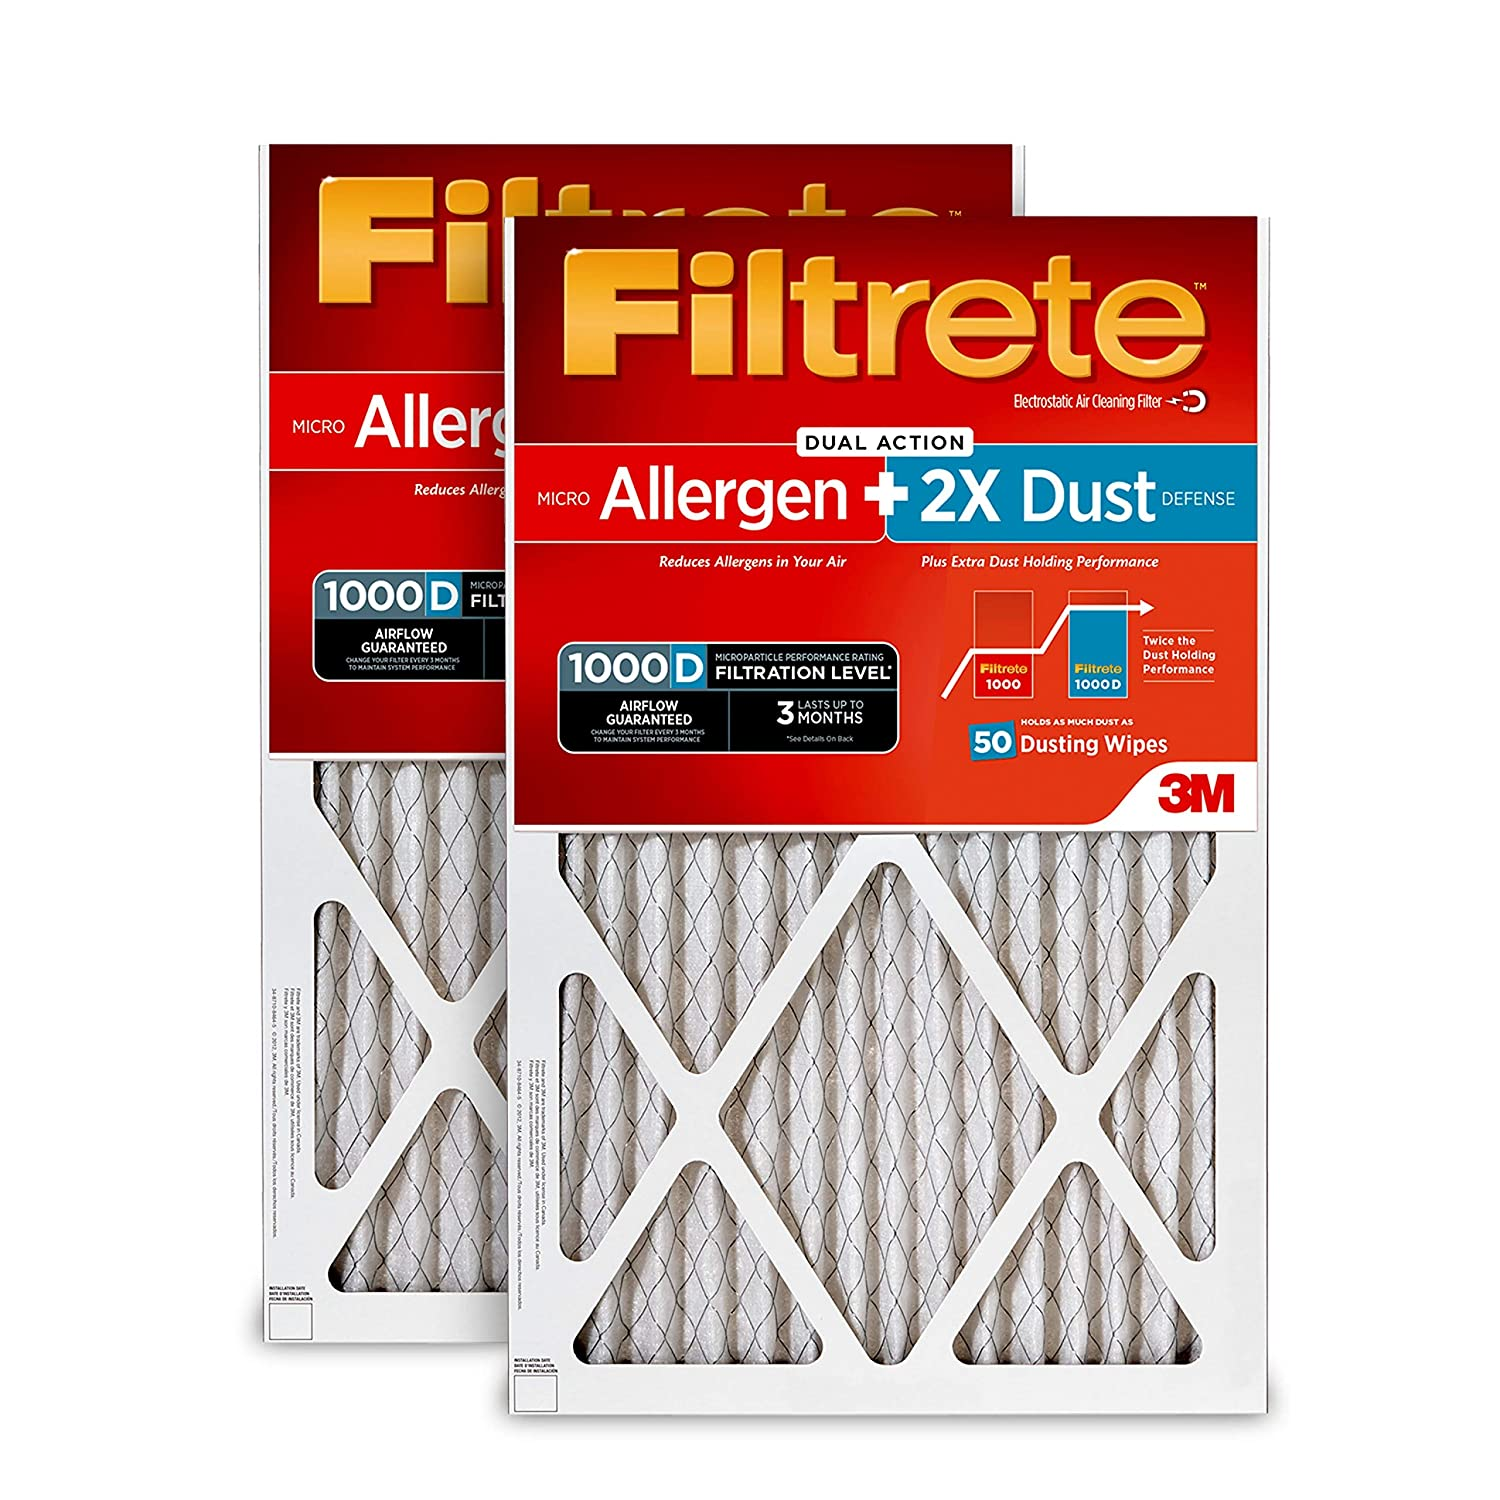 Filtrete 16x20x1, AC Furnace Air Filter, MPR 1000D, Micro Allergen PLUS DUST, 2-Pack